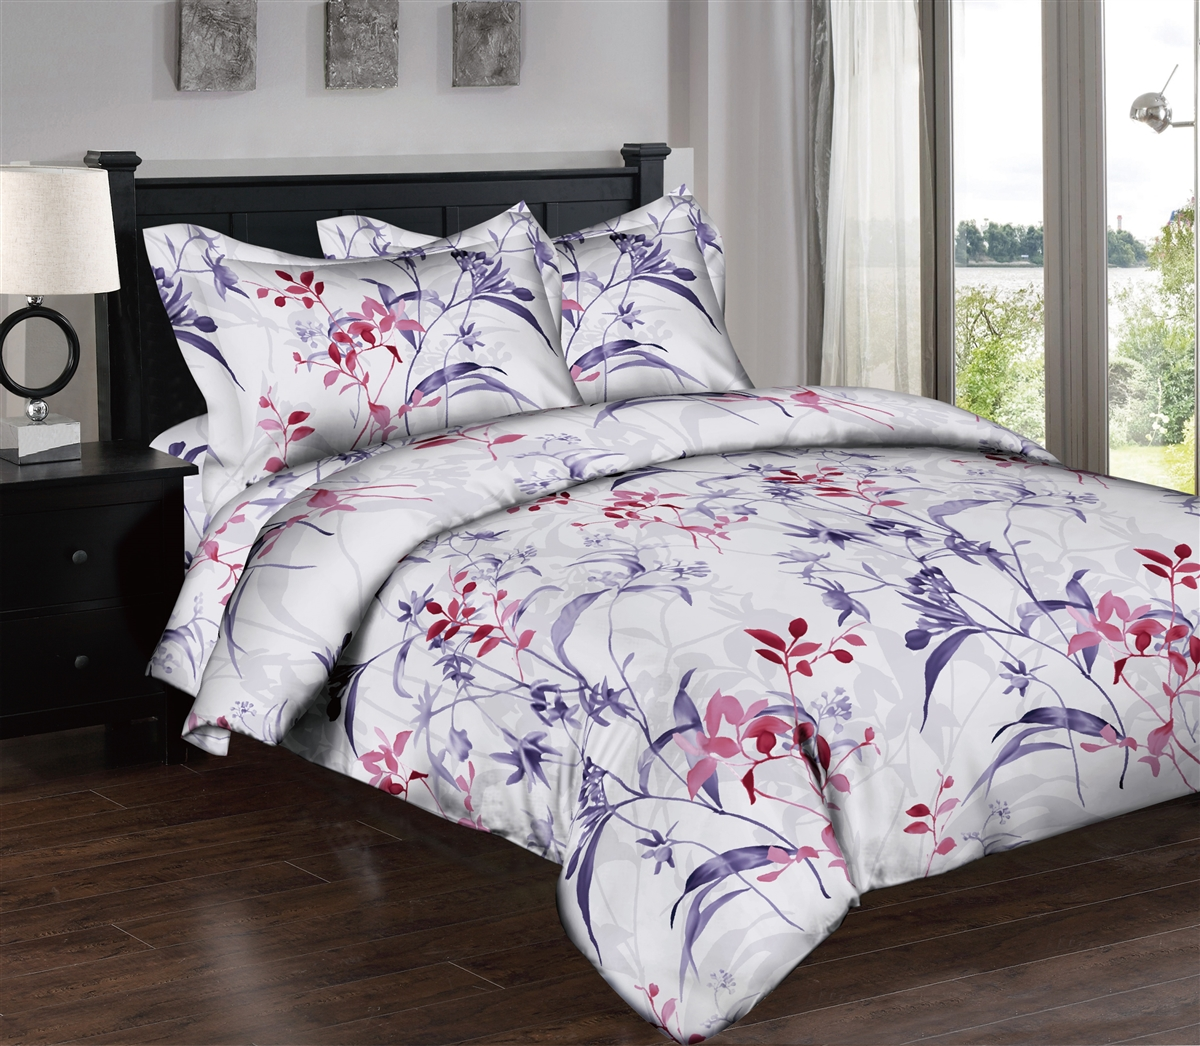 Watercolor Stems 6PC Twin Bedding Set